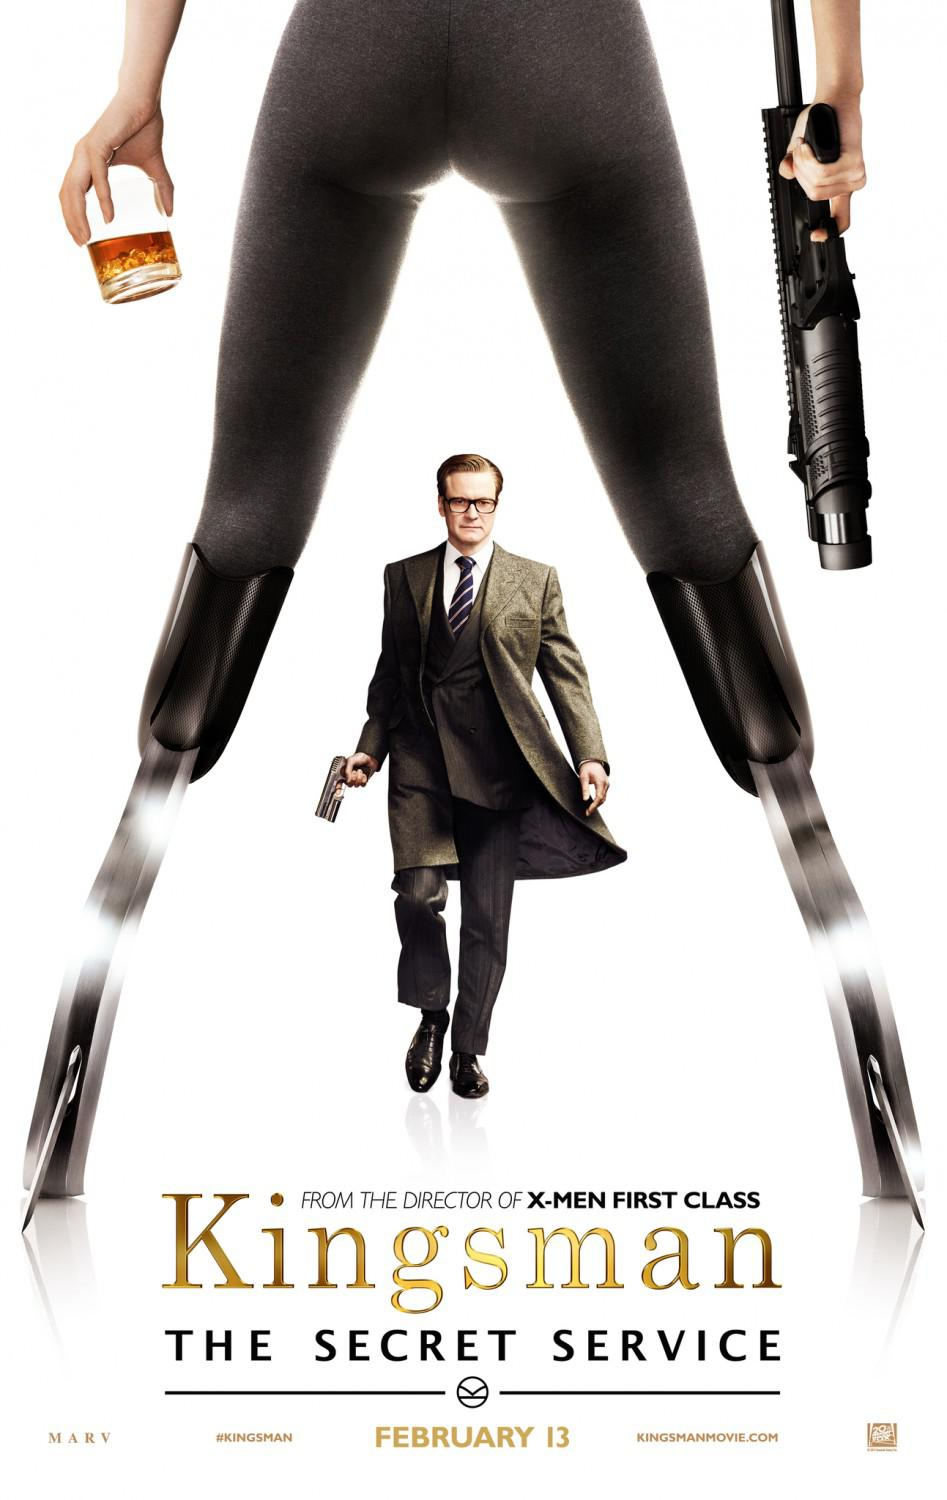 Kingsman 1 - the Secret Service - poster - Colin Firth